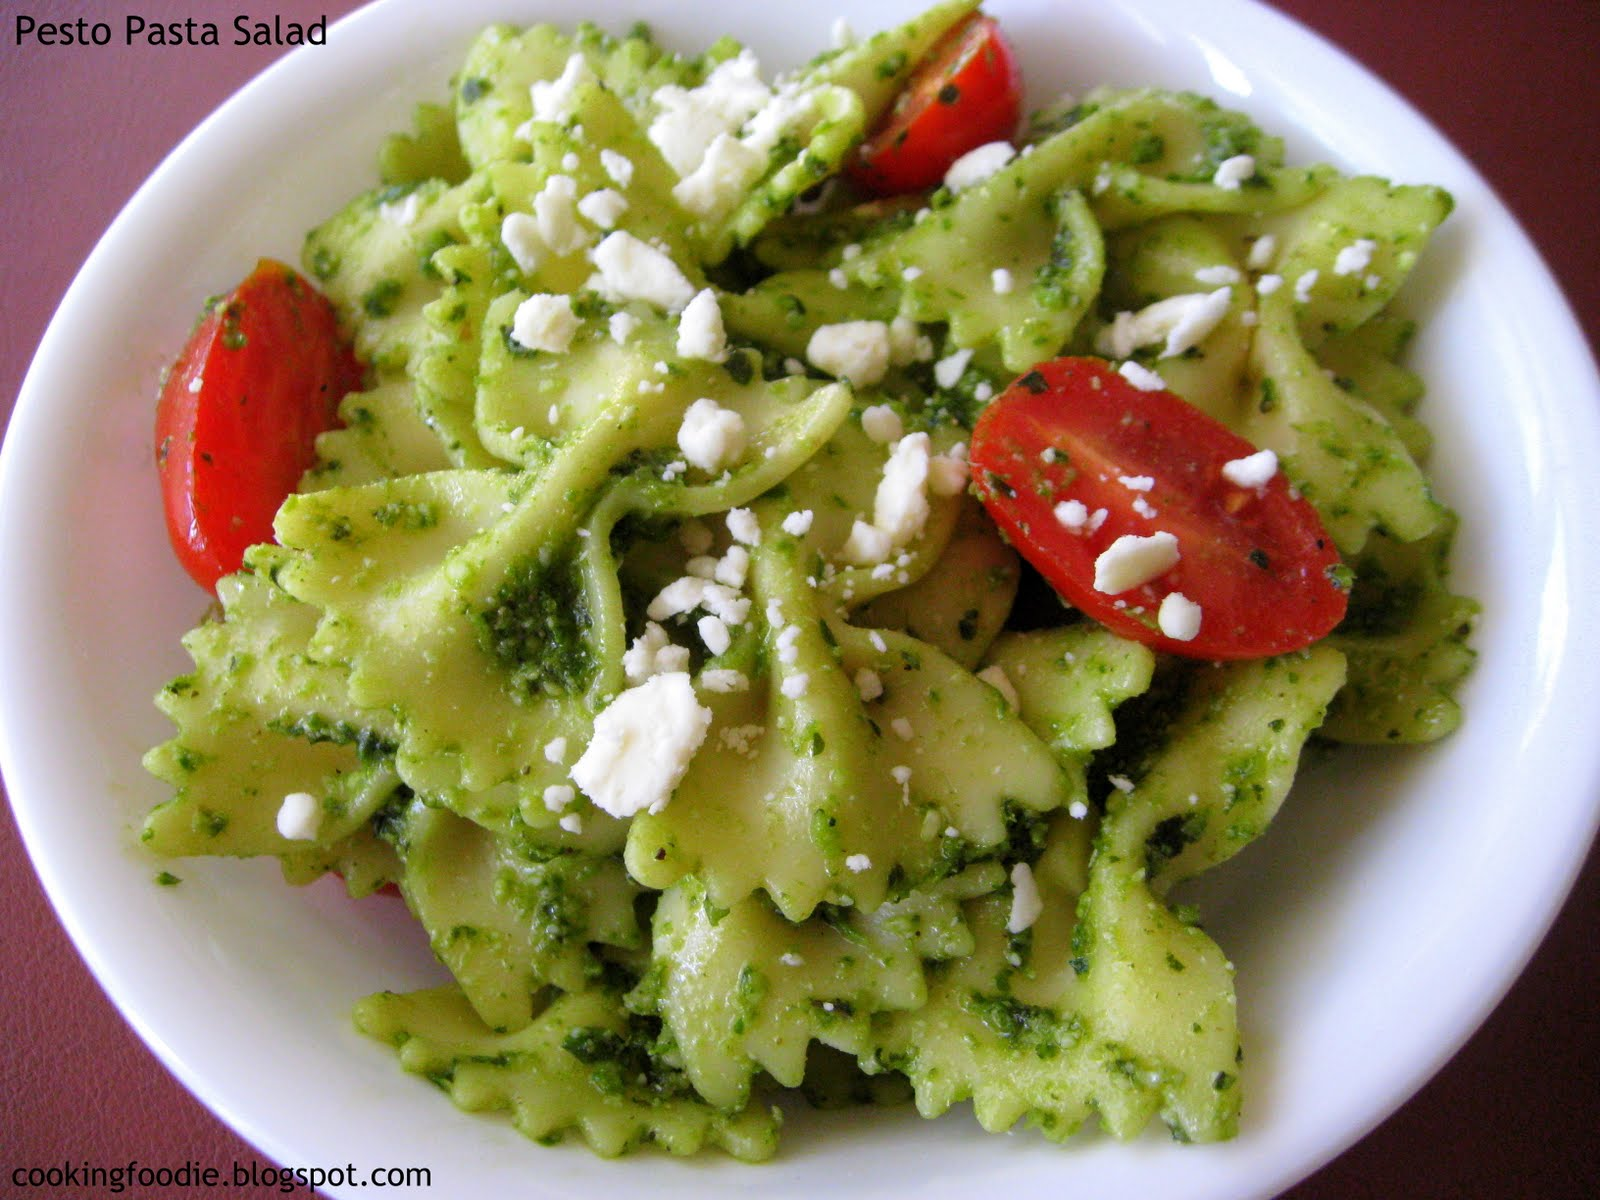 365 days of Eating: Pesto Pasta Salad